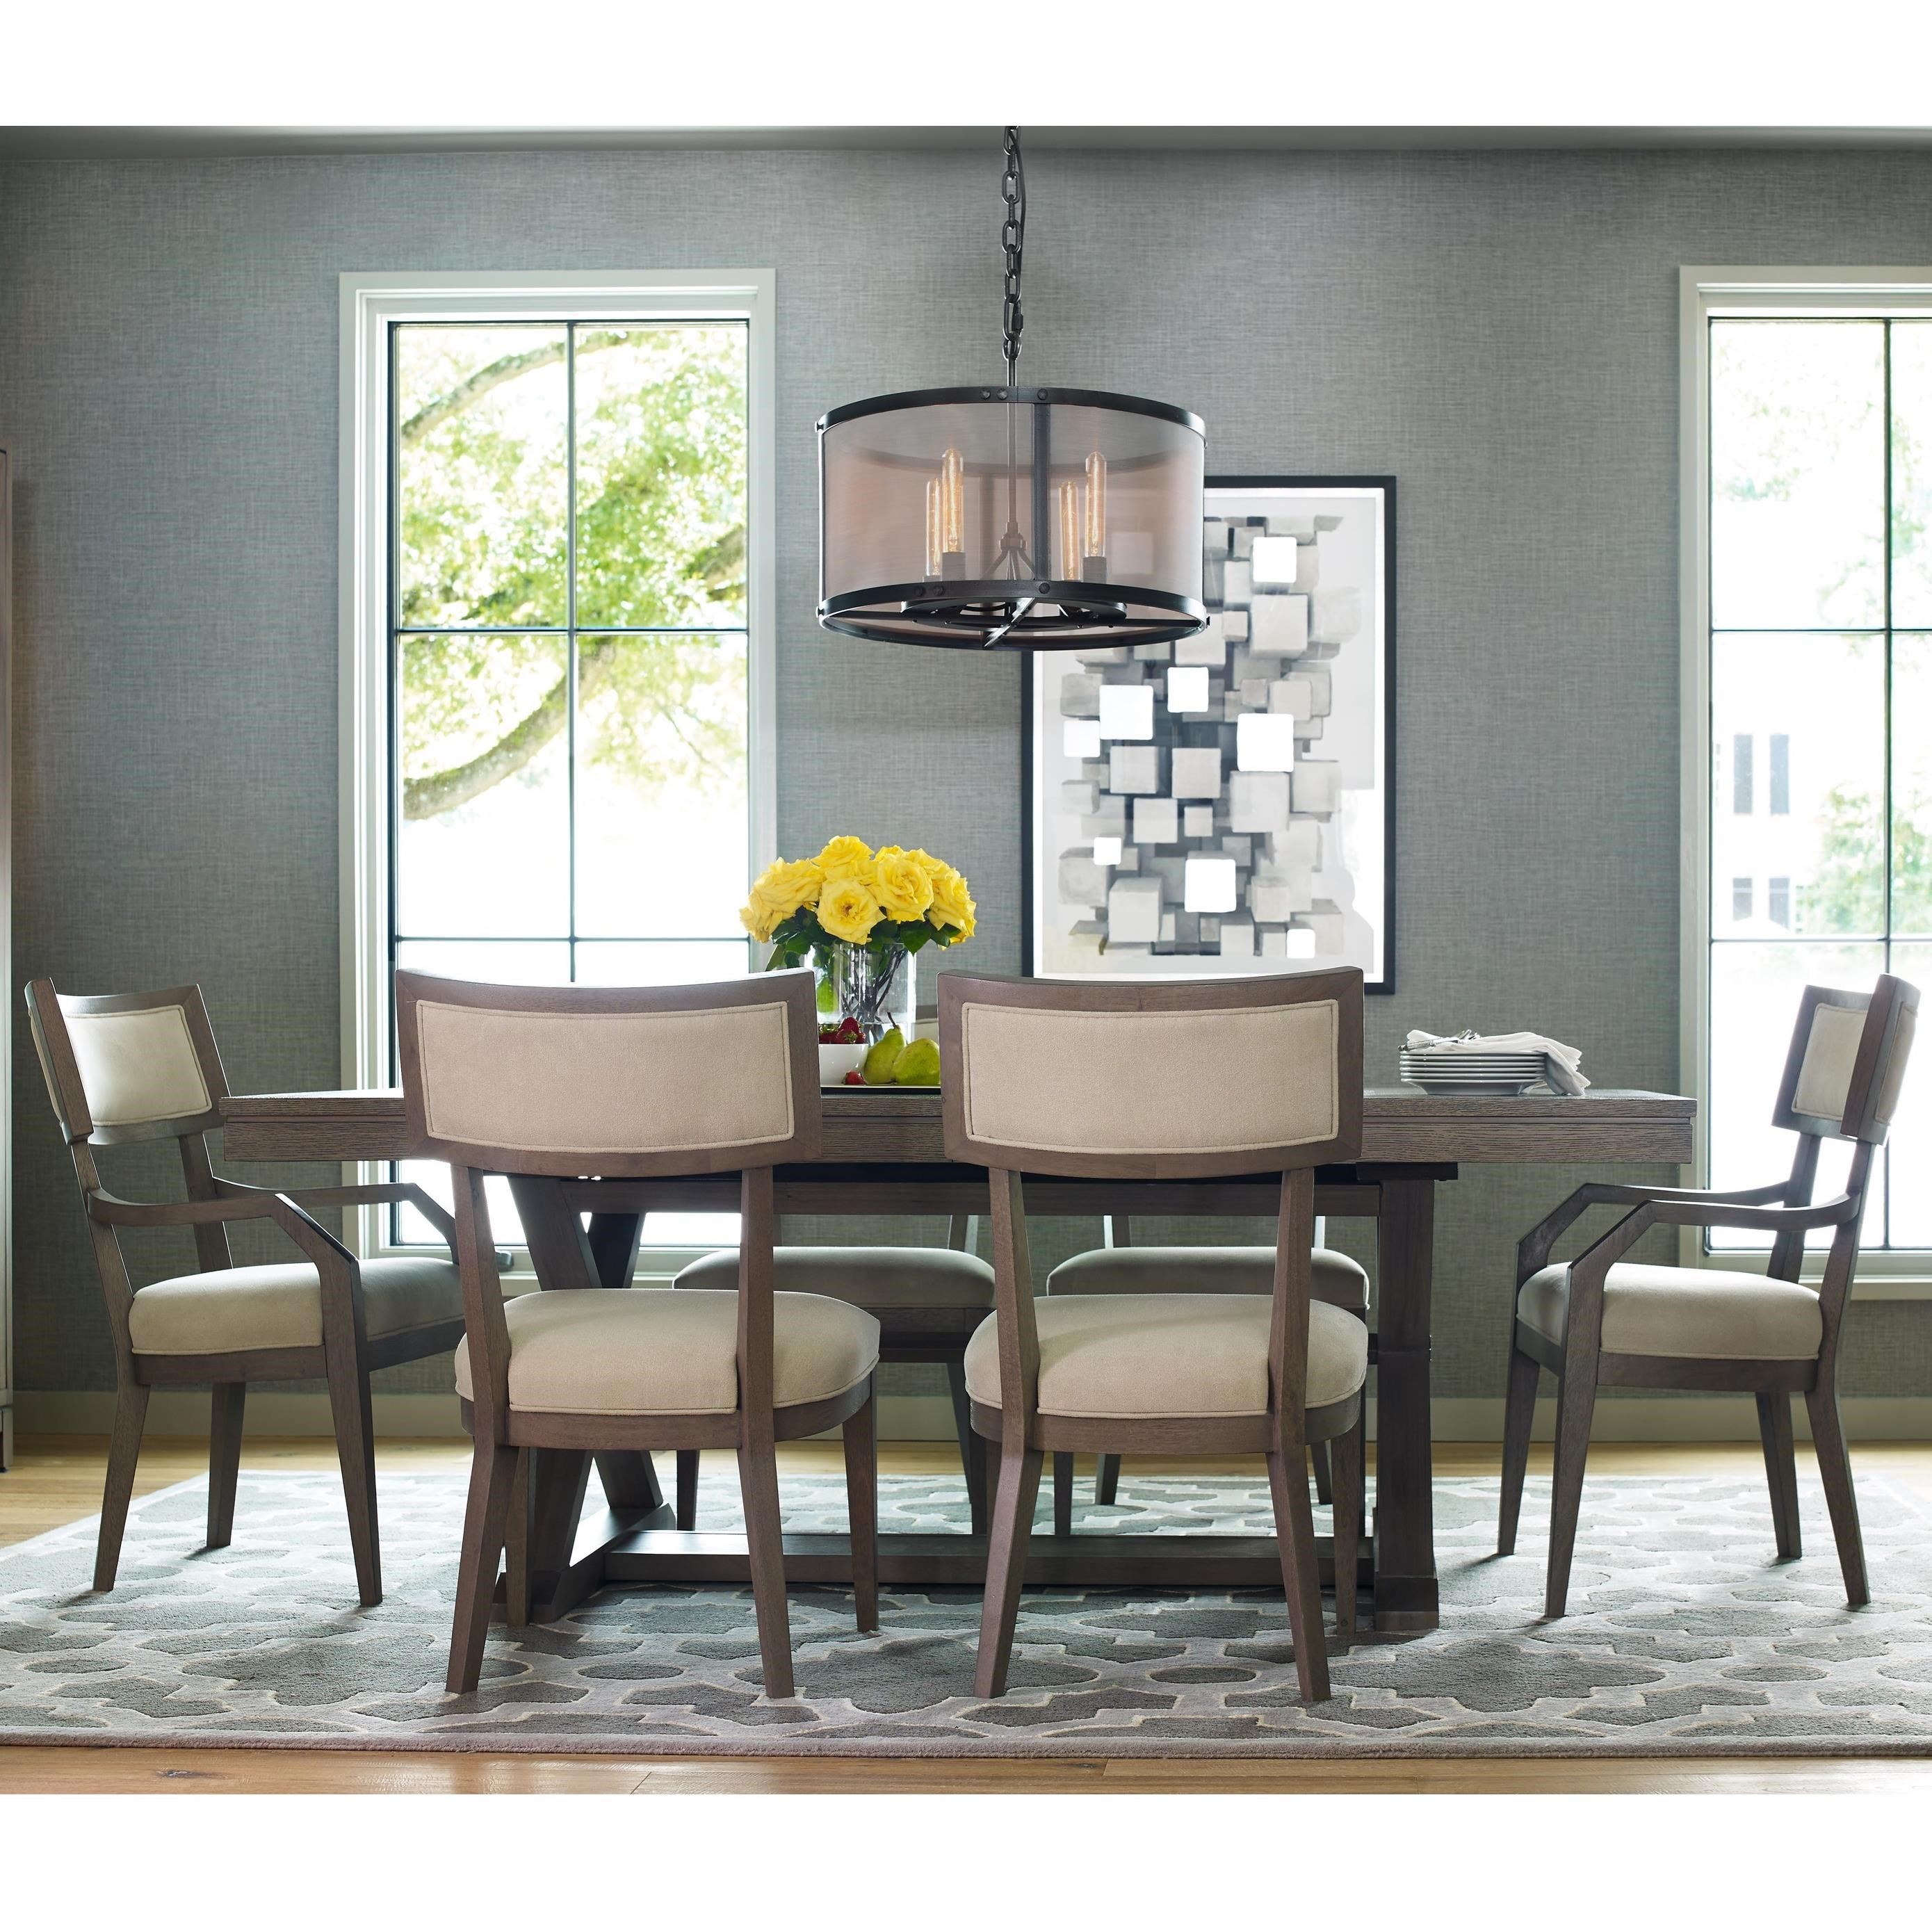 Highline 7 Piece Dining set by Rachael Ray Home by Legacy Classic at Baer's Furniture